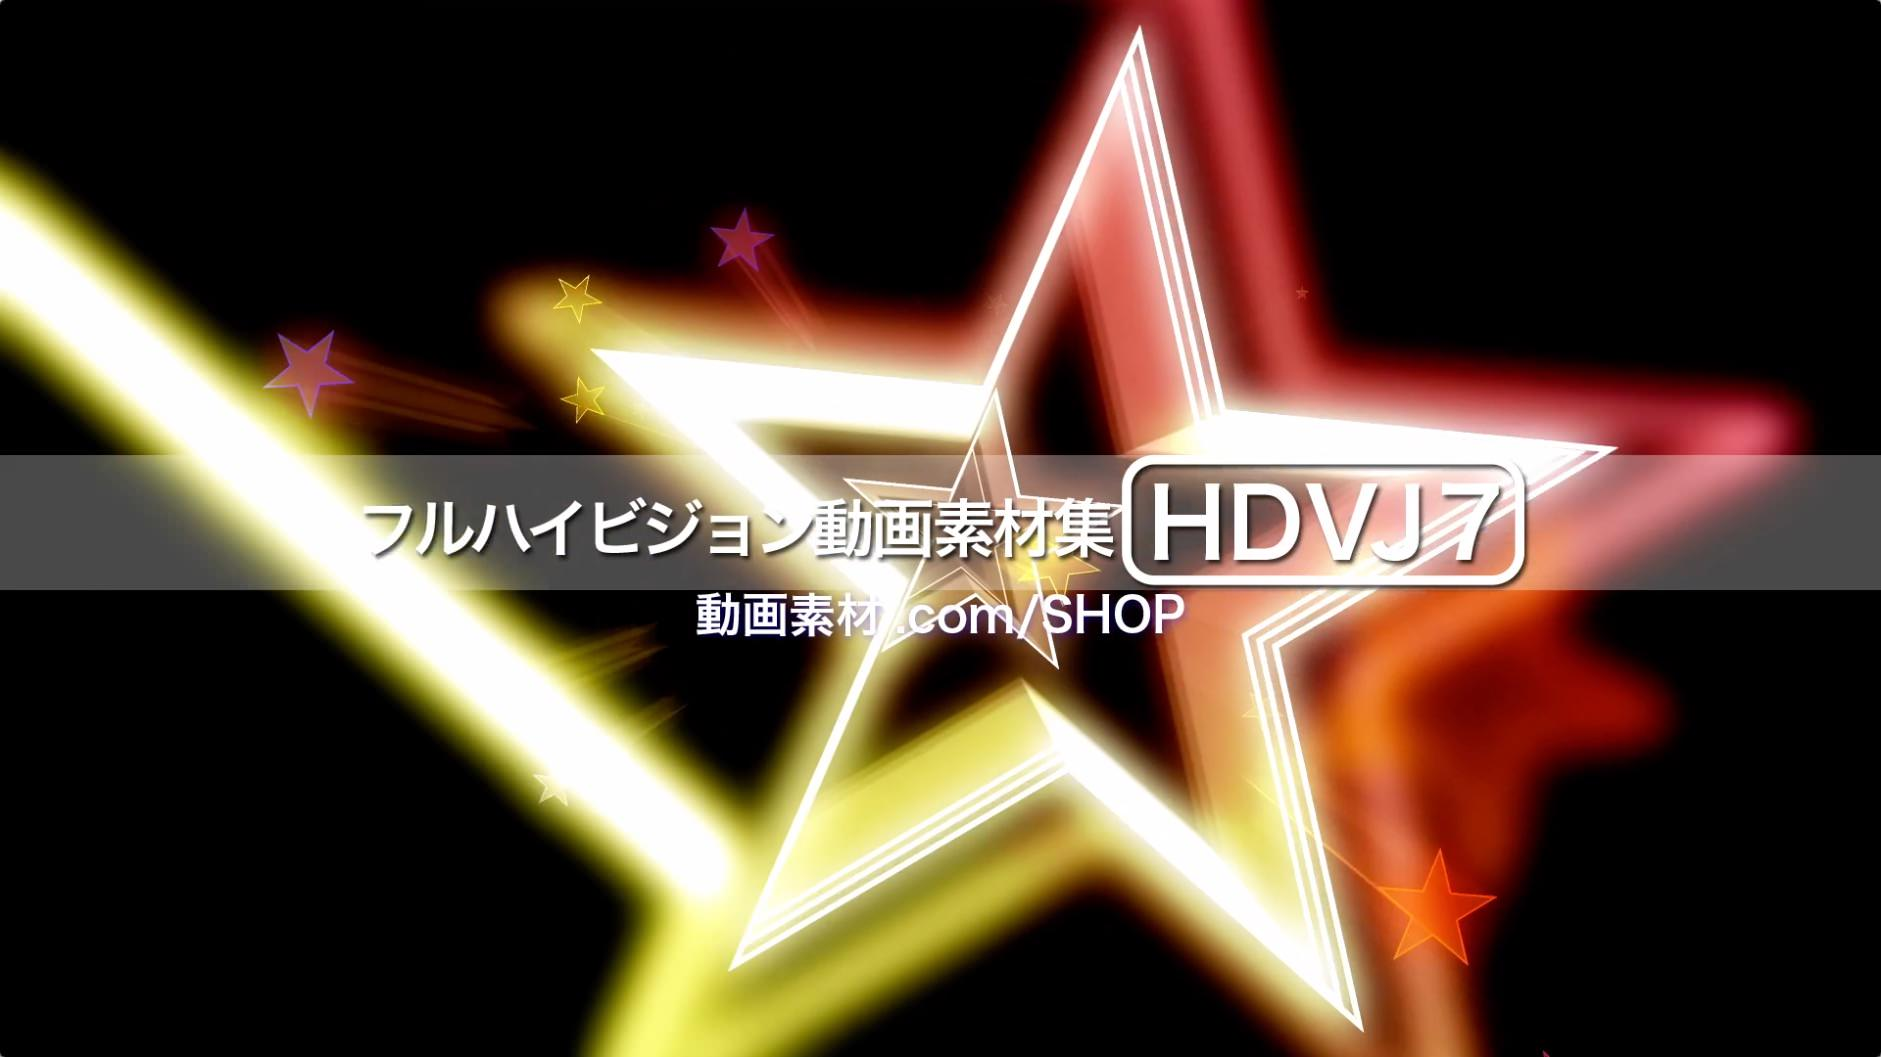 【MovieMaterial HDVJ6】フルハイビジョン動画素材集27